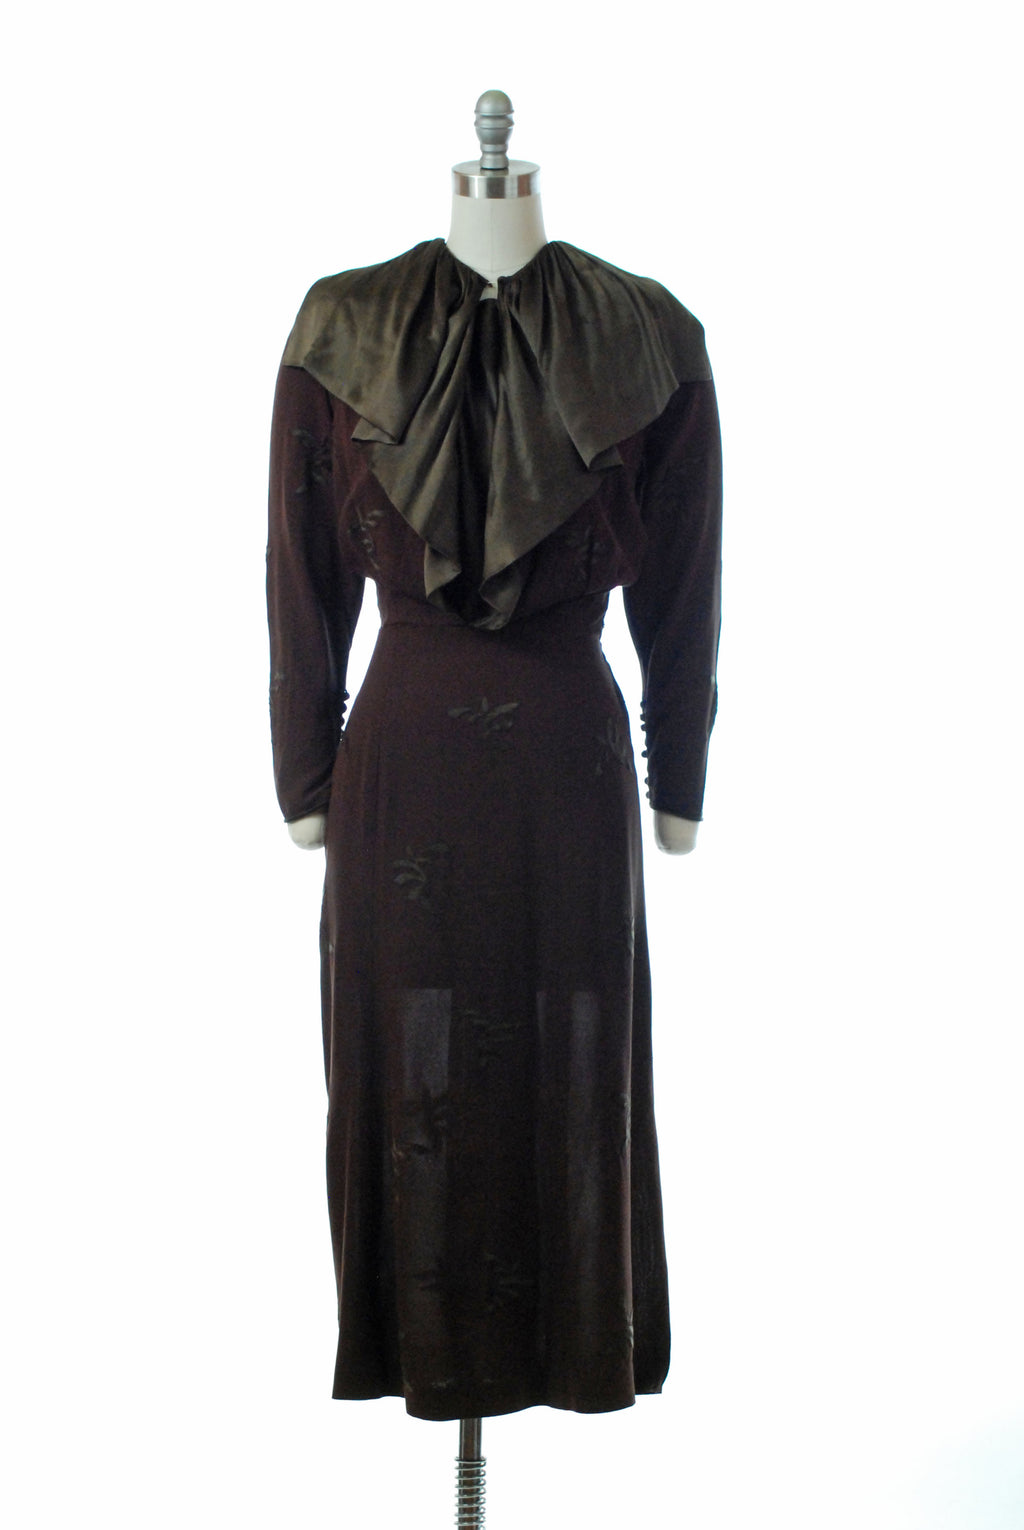 Elegant Mid 1930s Dress Dated 1934 in Appliqued Brown Crepe with Wide Silk Satin Collar